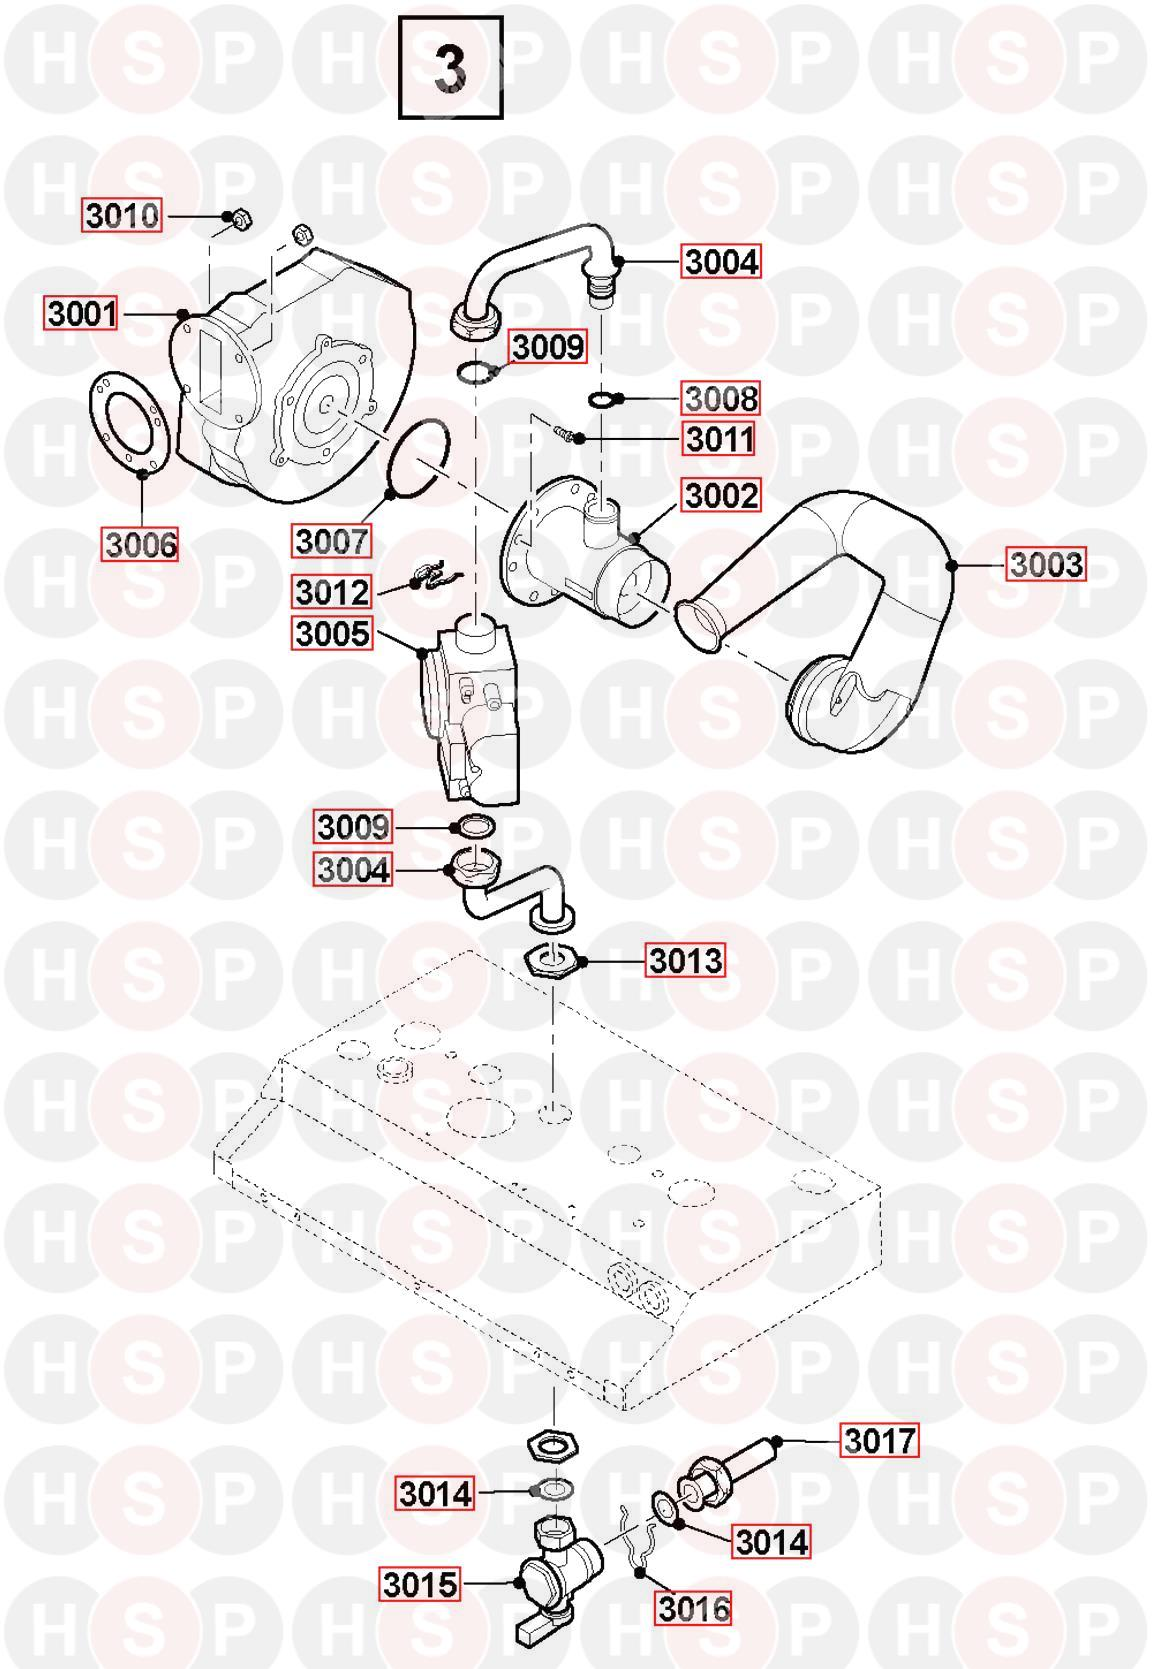 Fine Core Switch Diagram Thick Guitar Toggle Switch Wiring Clean Hss Strat Wiring Gibson Pickup Wiring Colors Young Bulldog Car Wiring Diagrams Green3 Humbucker Strat Remeha Avanta Plus Combi 28C Boiler Diagram (FAN ASSEMBLY ..